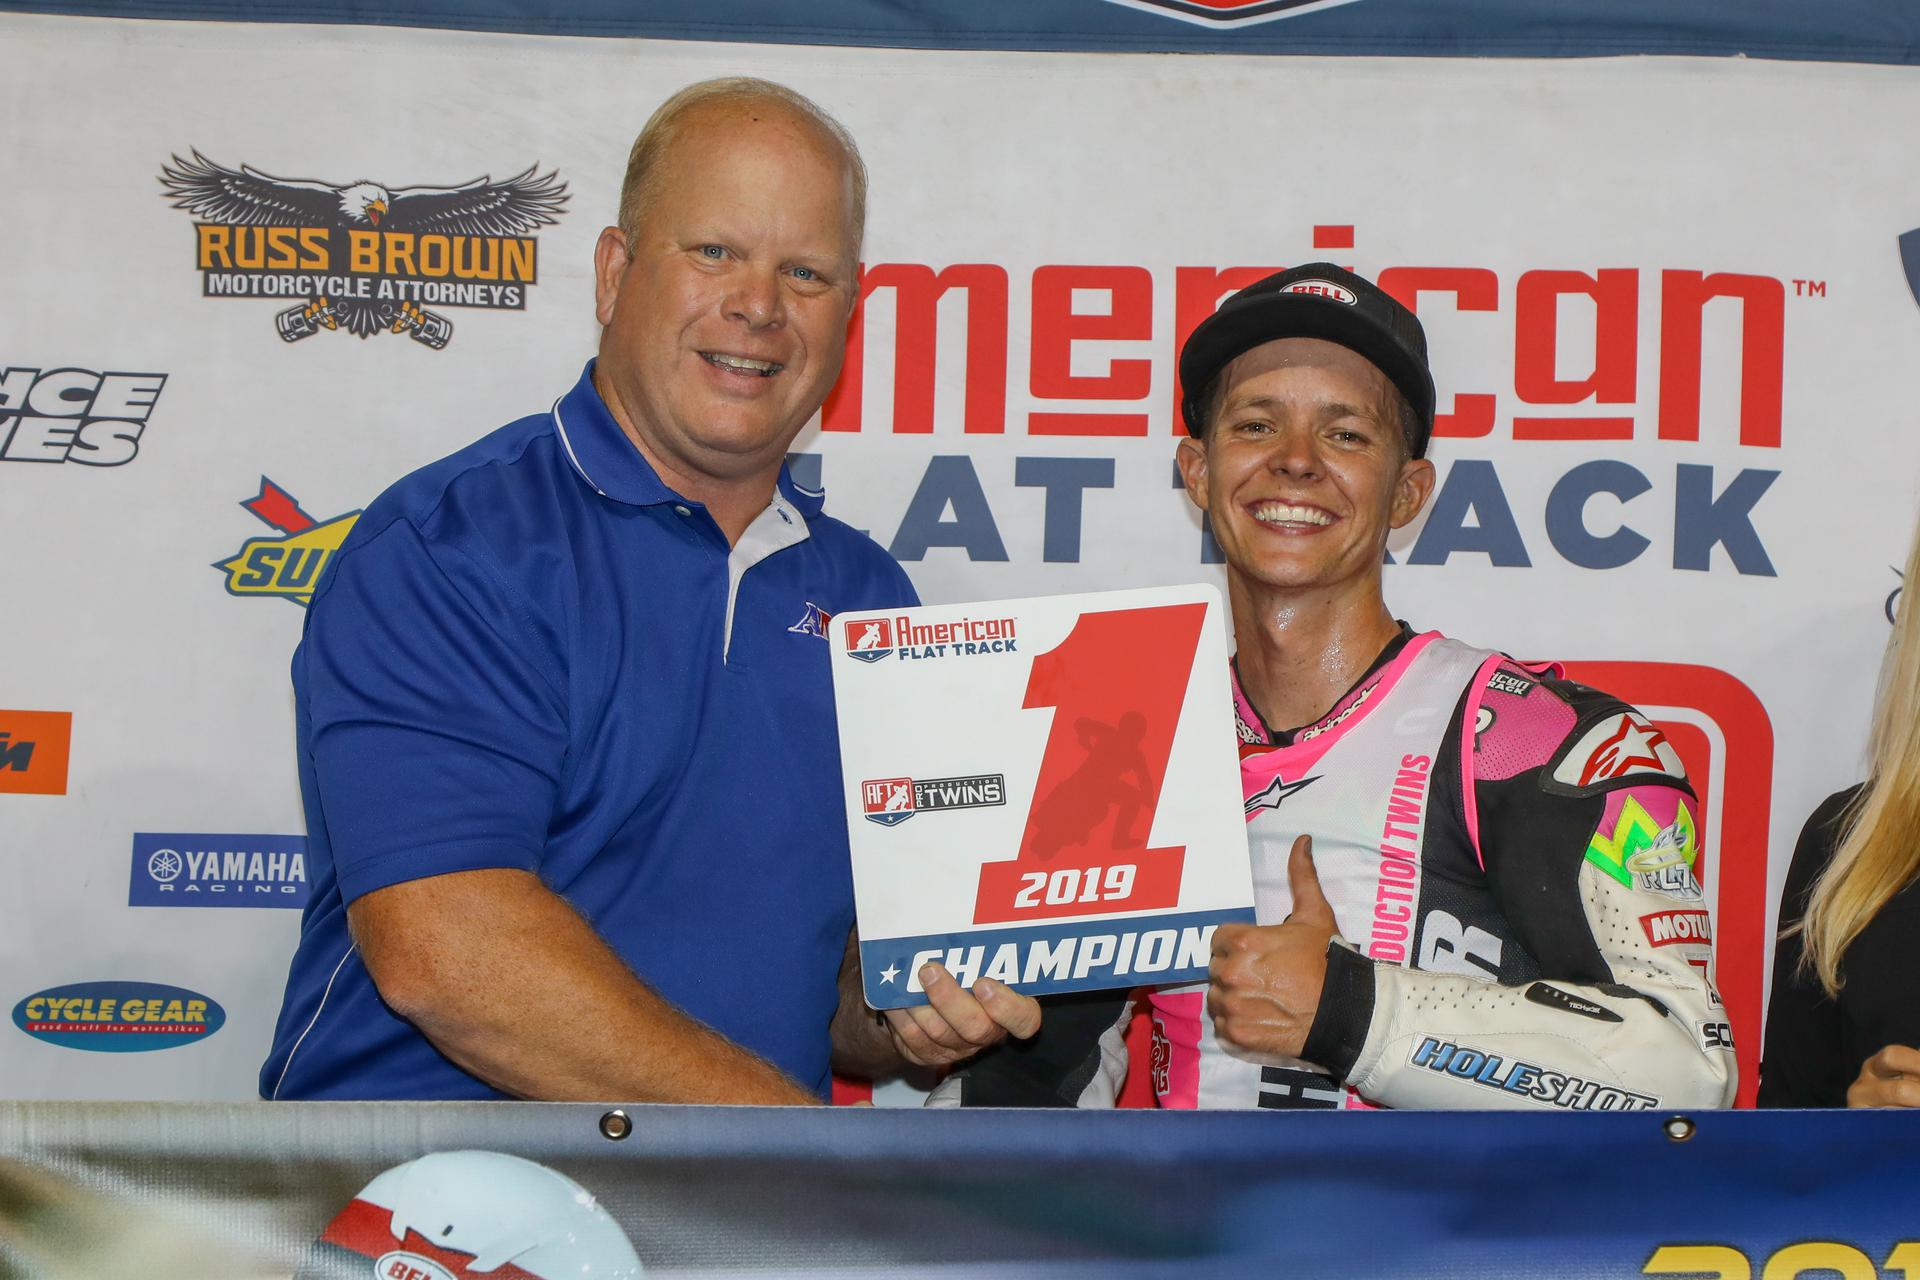 Meadowlands Mile AFT Twins champ